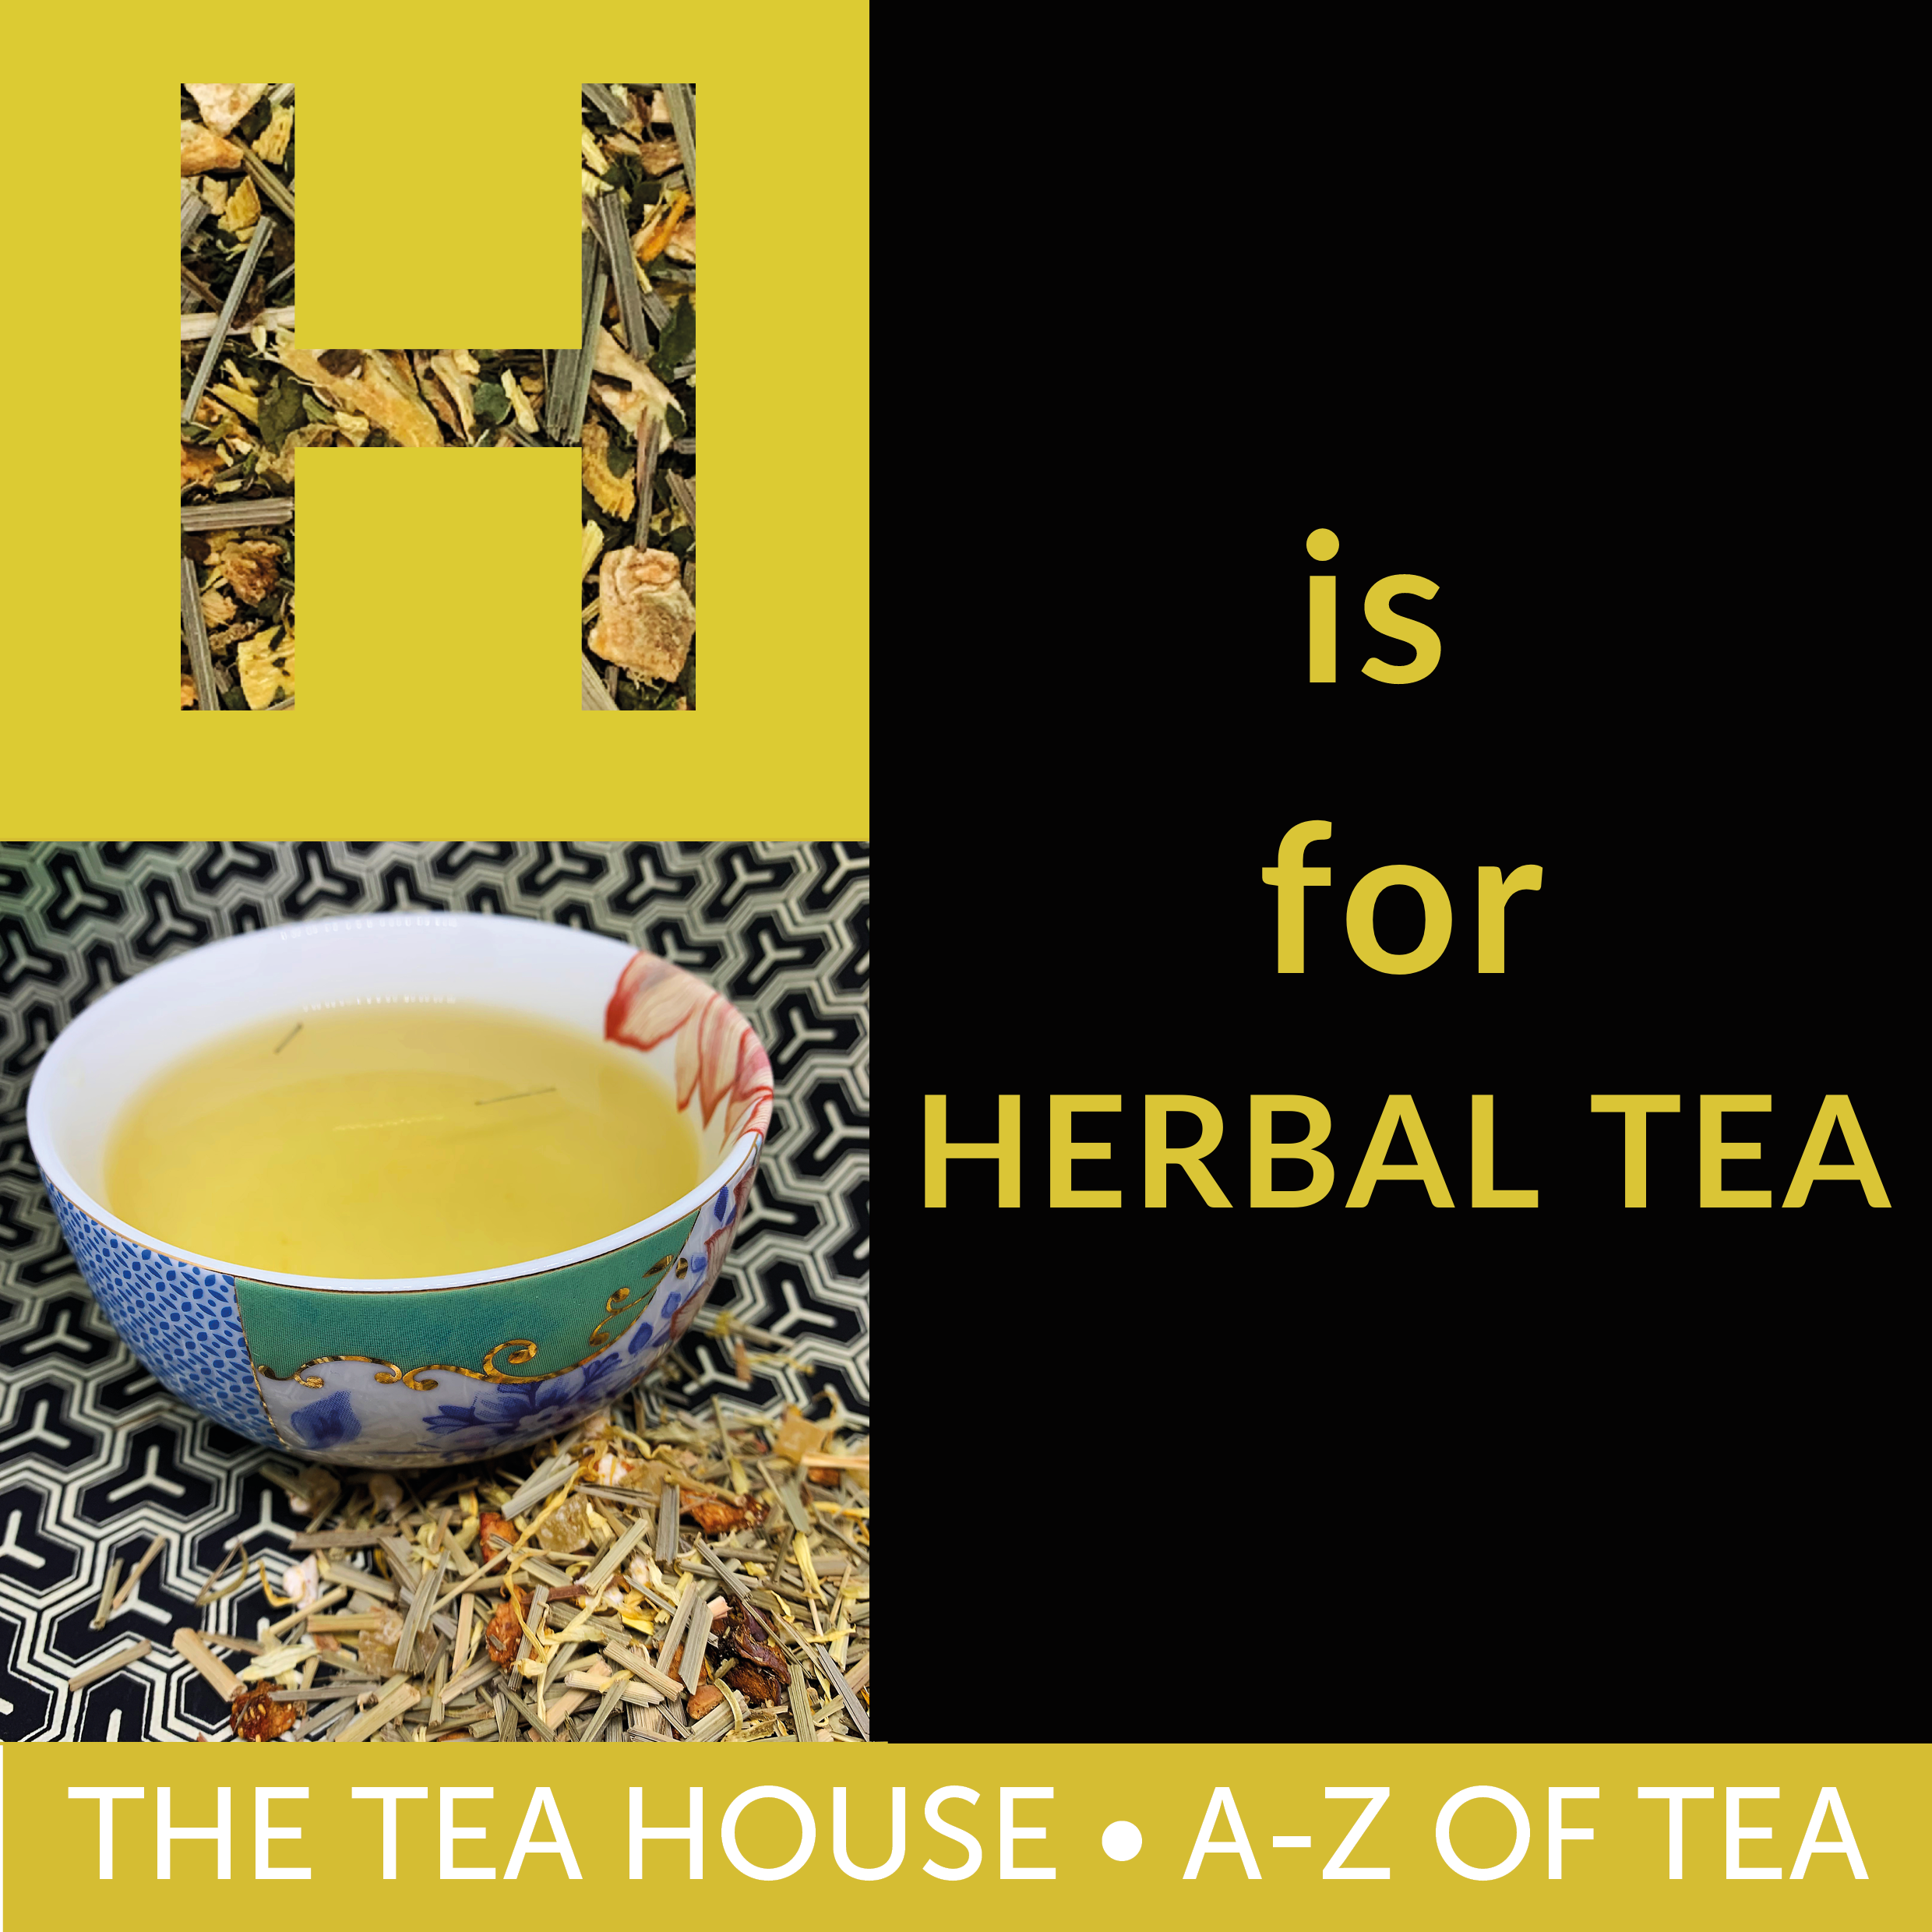 H is for Herbal Tea